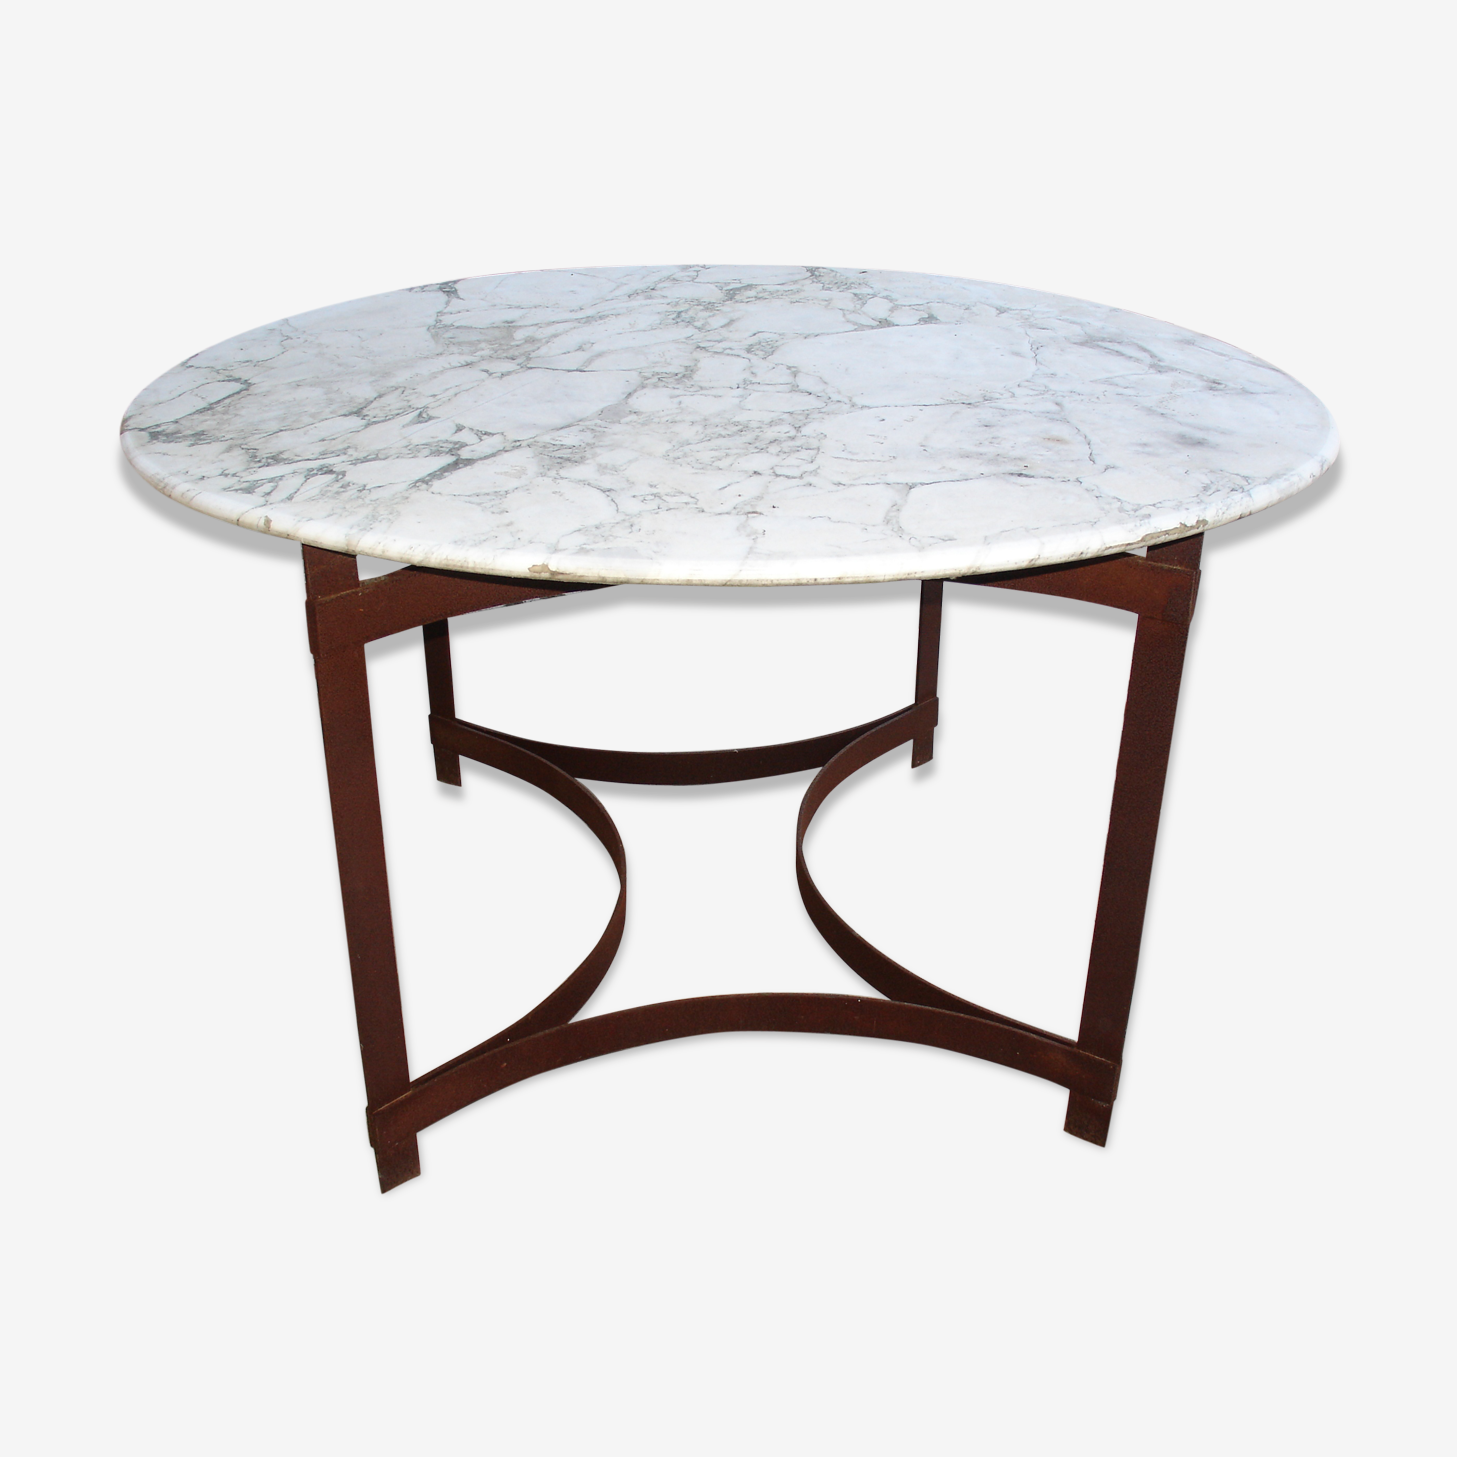 Table in steel and marble around 1970